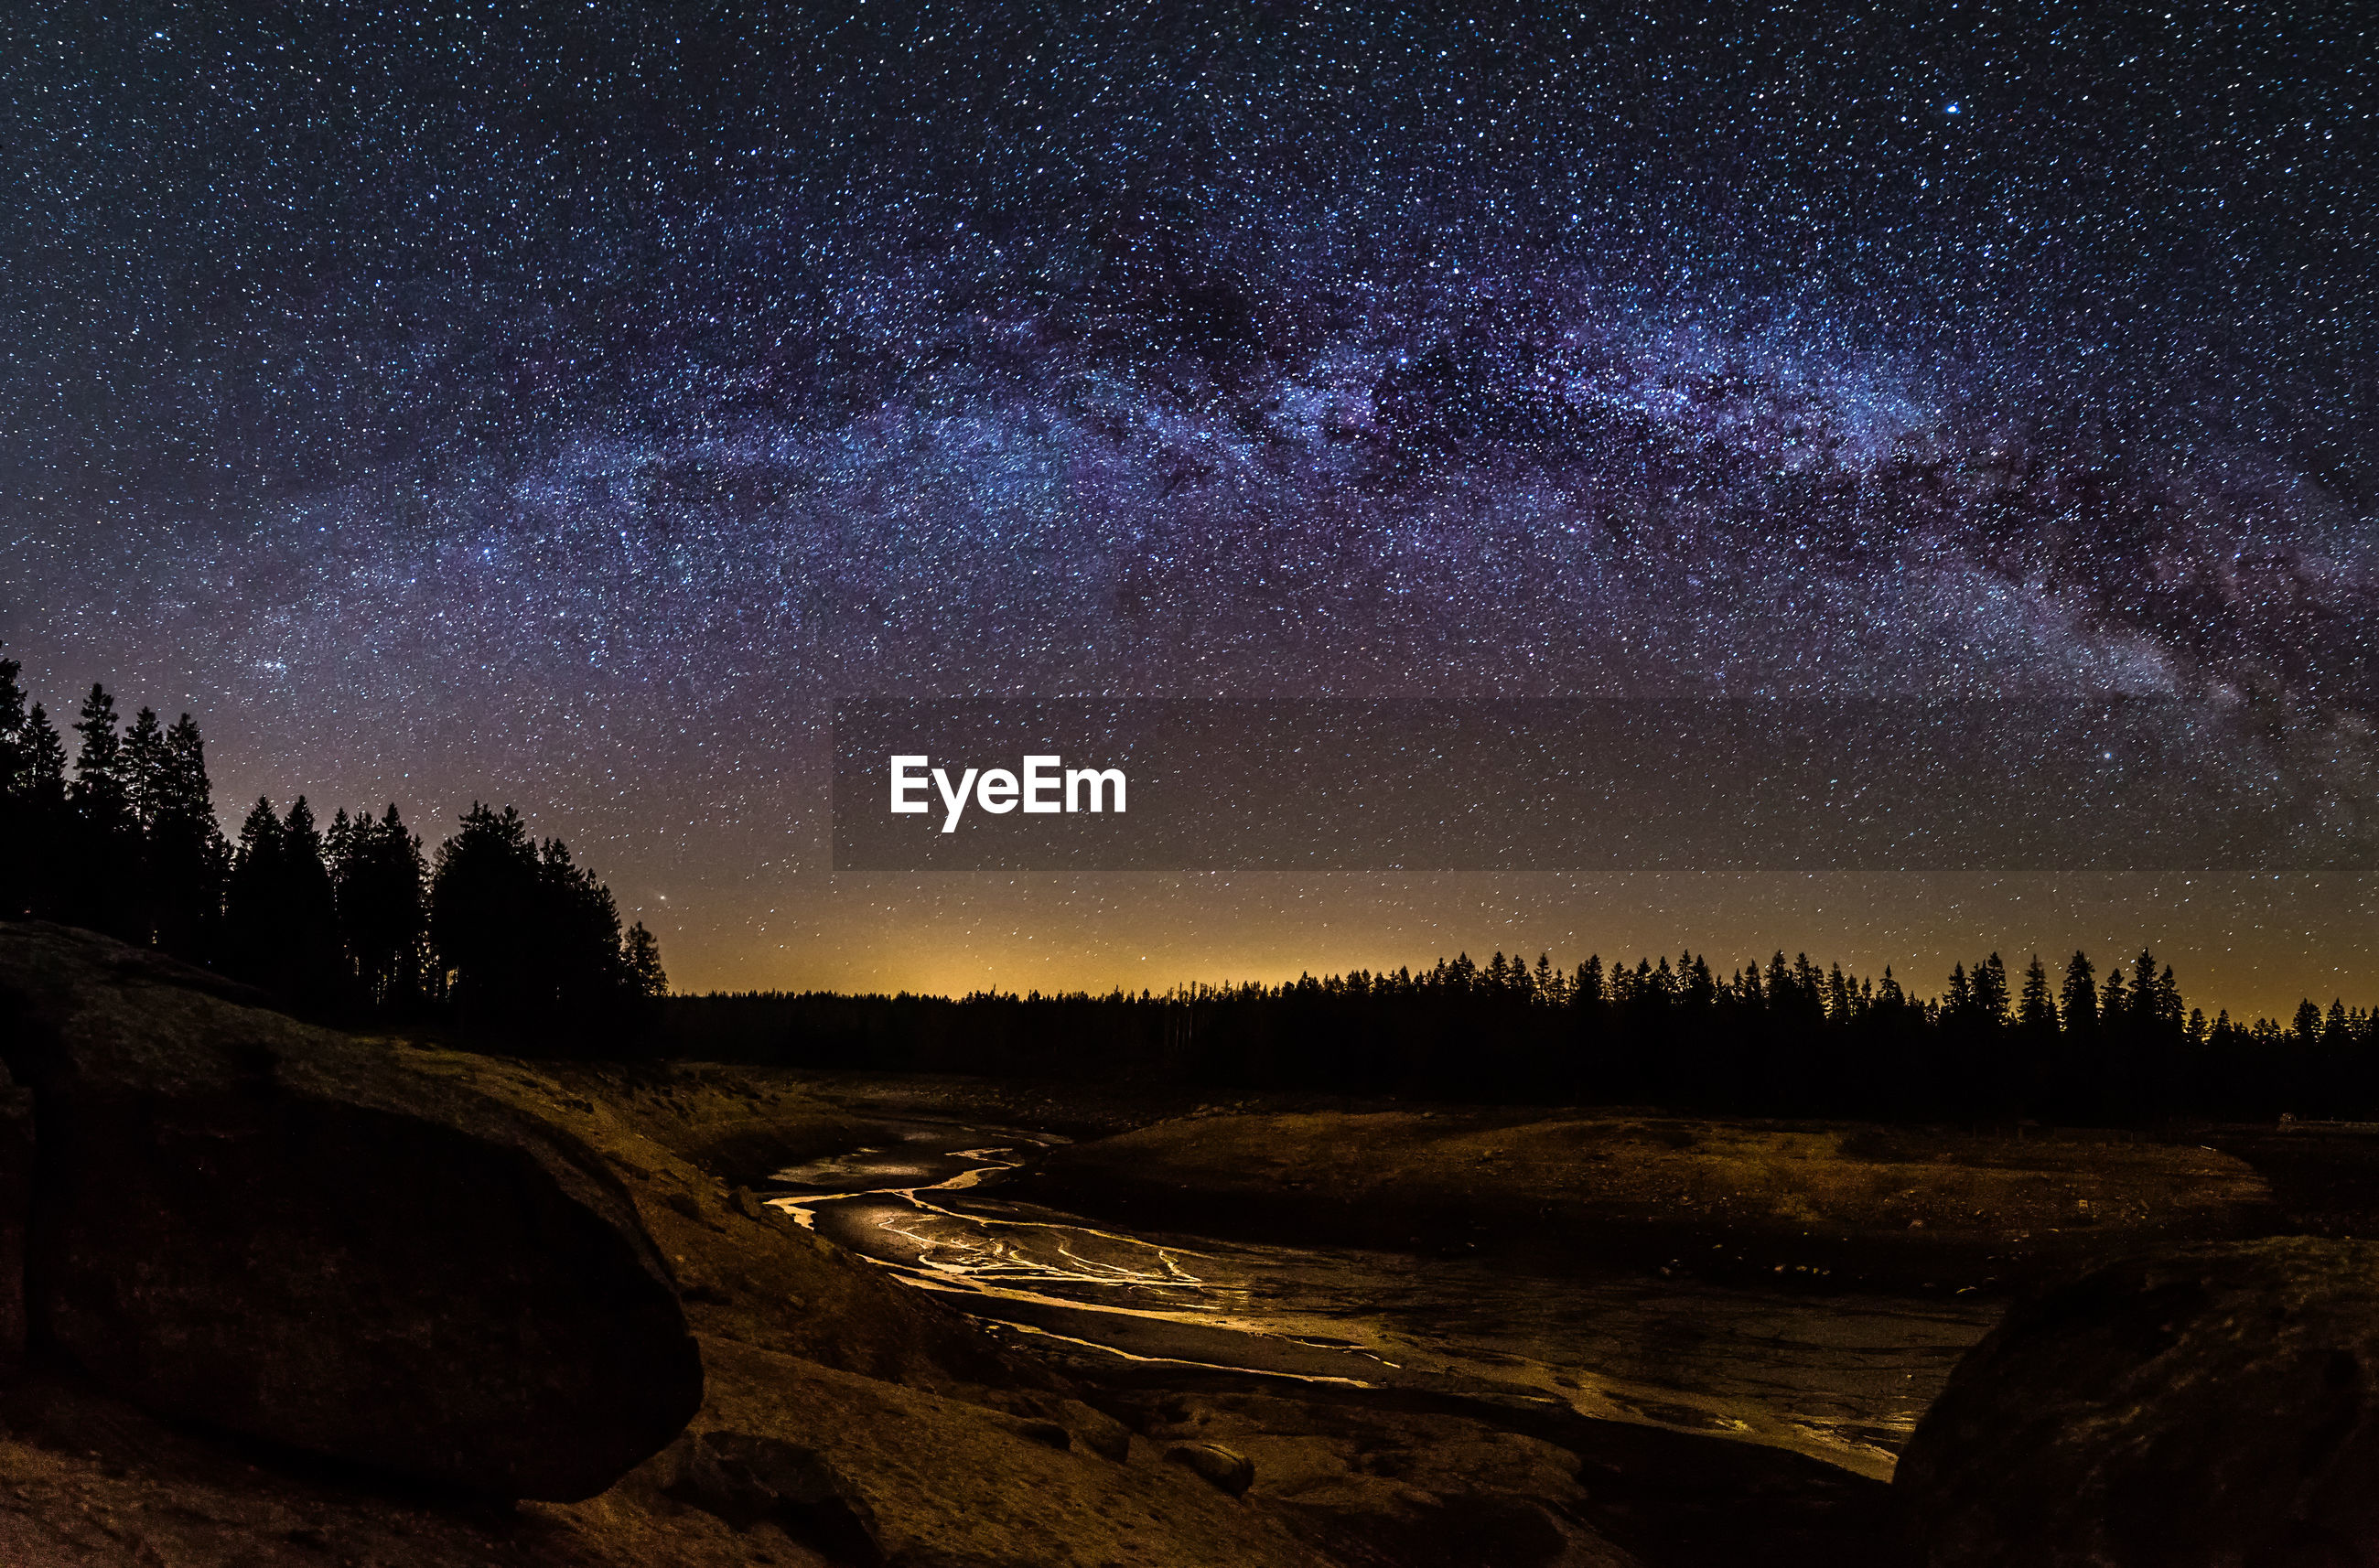 SCENIC VIEW OF STAR FIELD AGAINST SKY